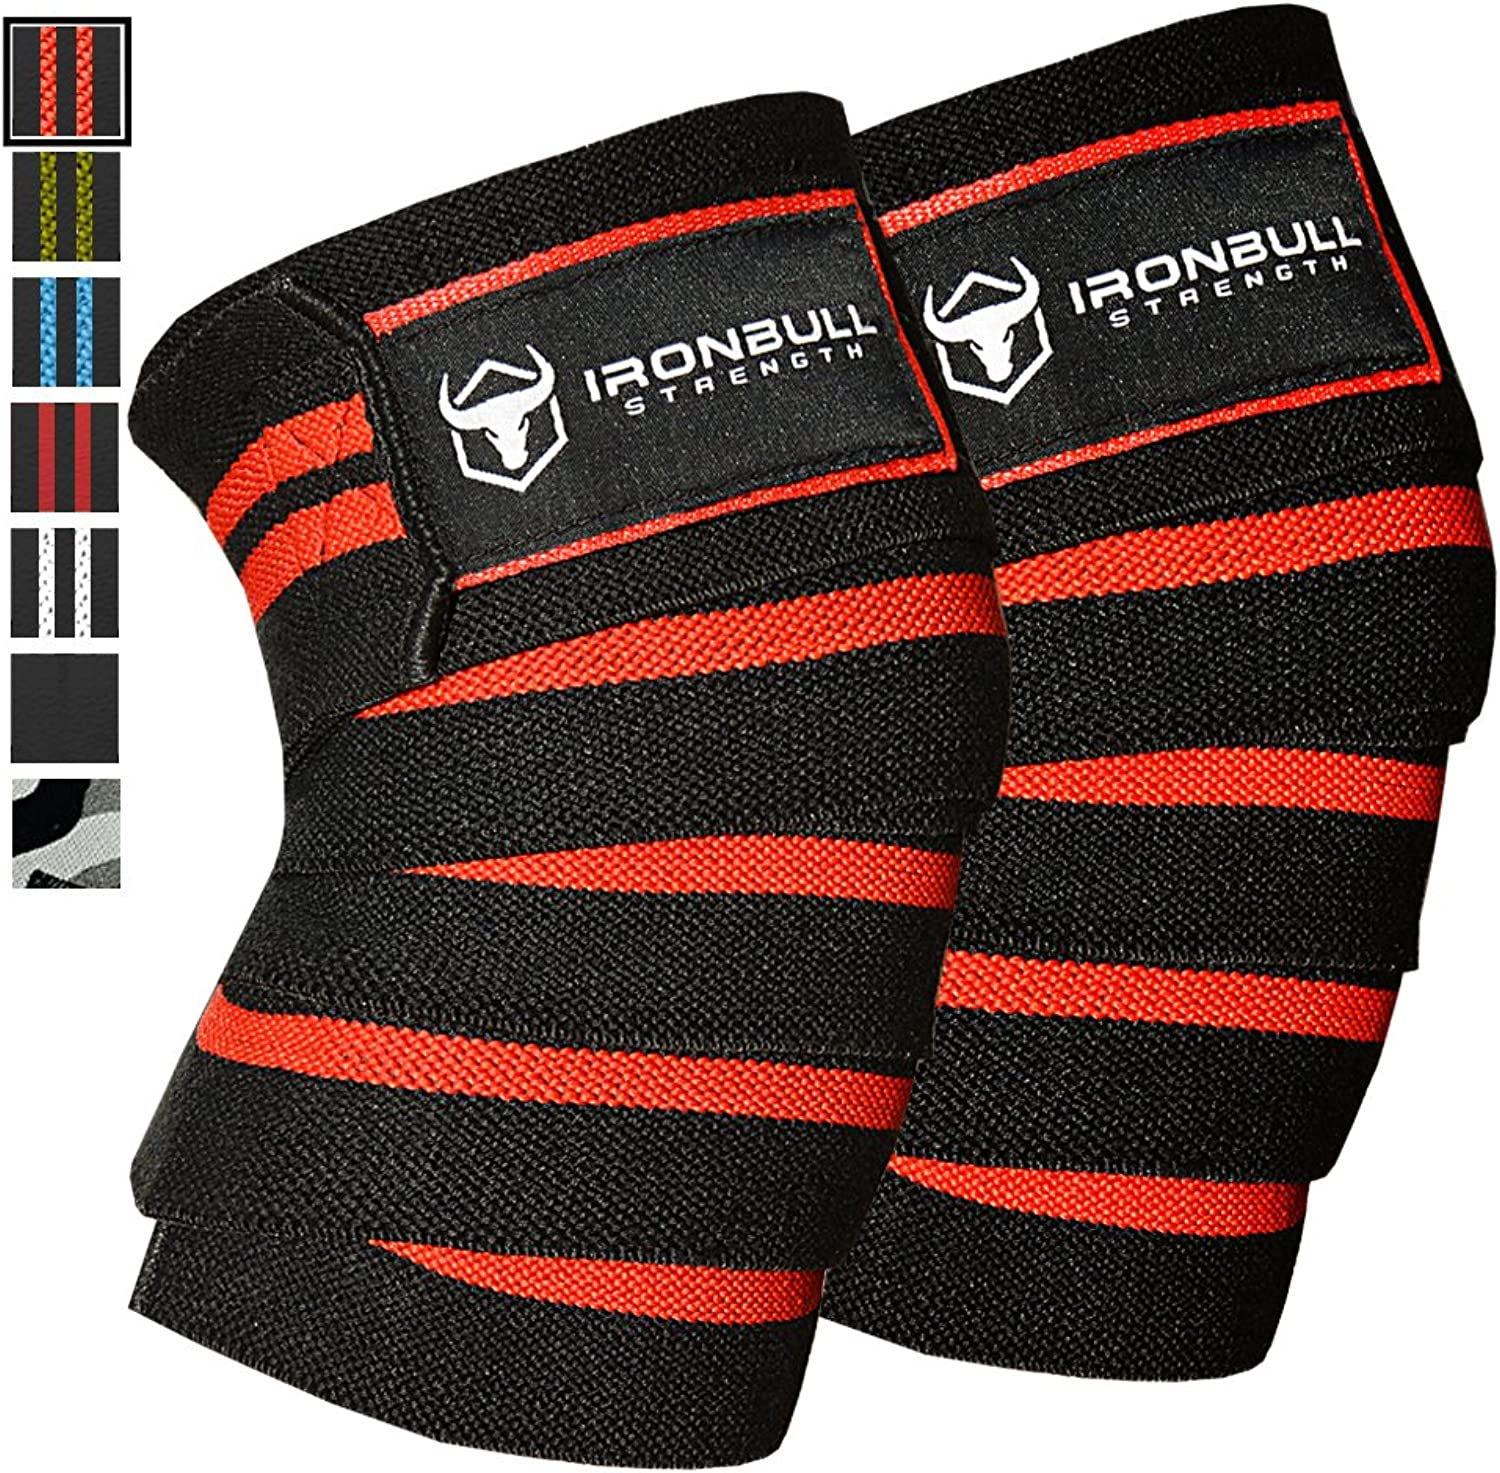 Knee Wraps (1 Pair)  80  Elastic Support & Compression  for Weightlifting, Powerlifting, Fitness, Crossfit WODs & Gym Workout  Knee Straps for Squats